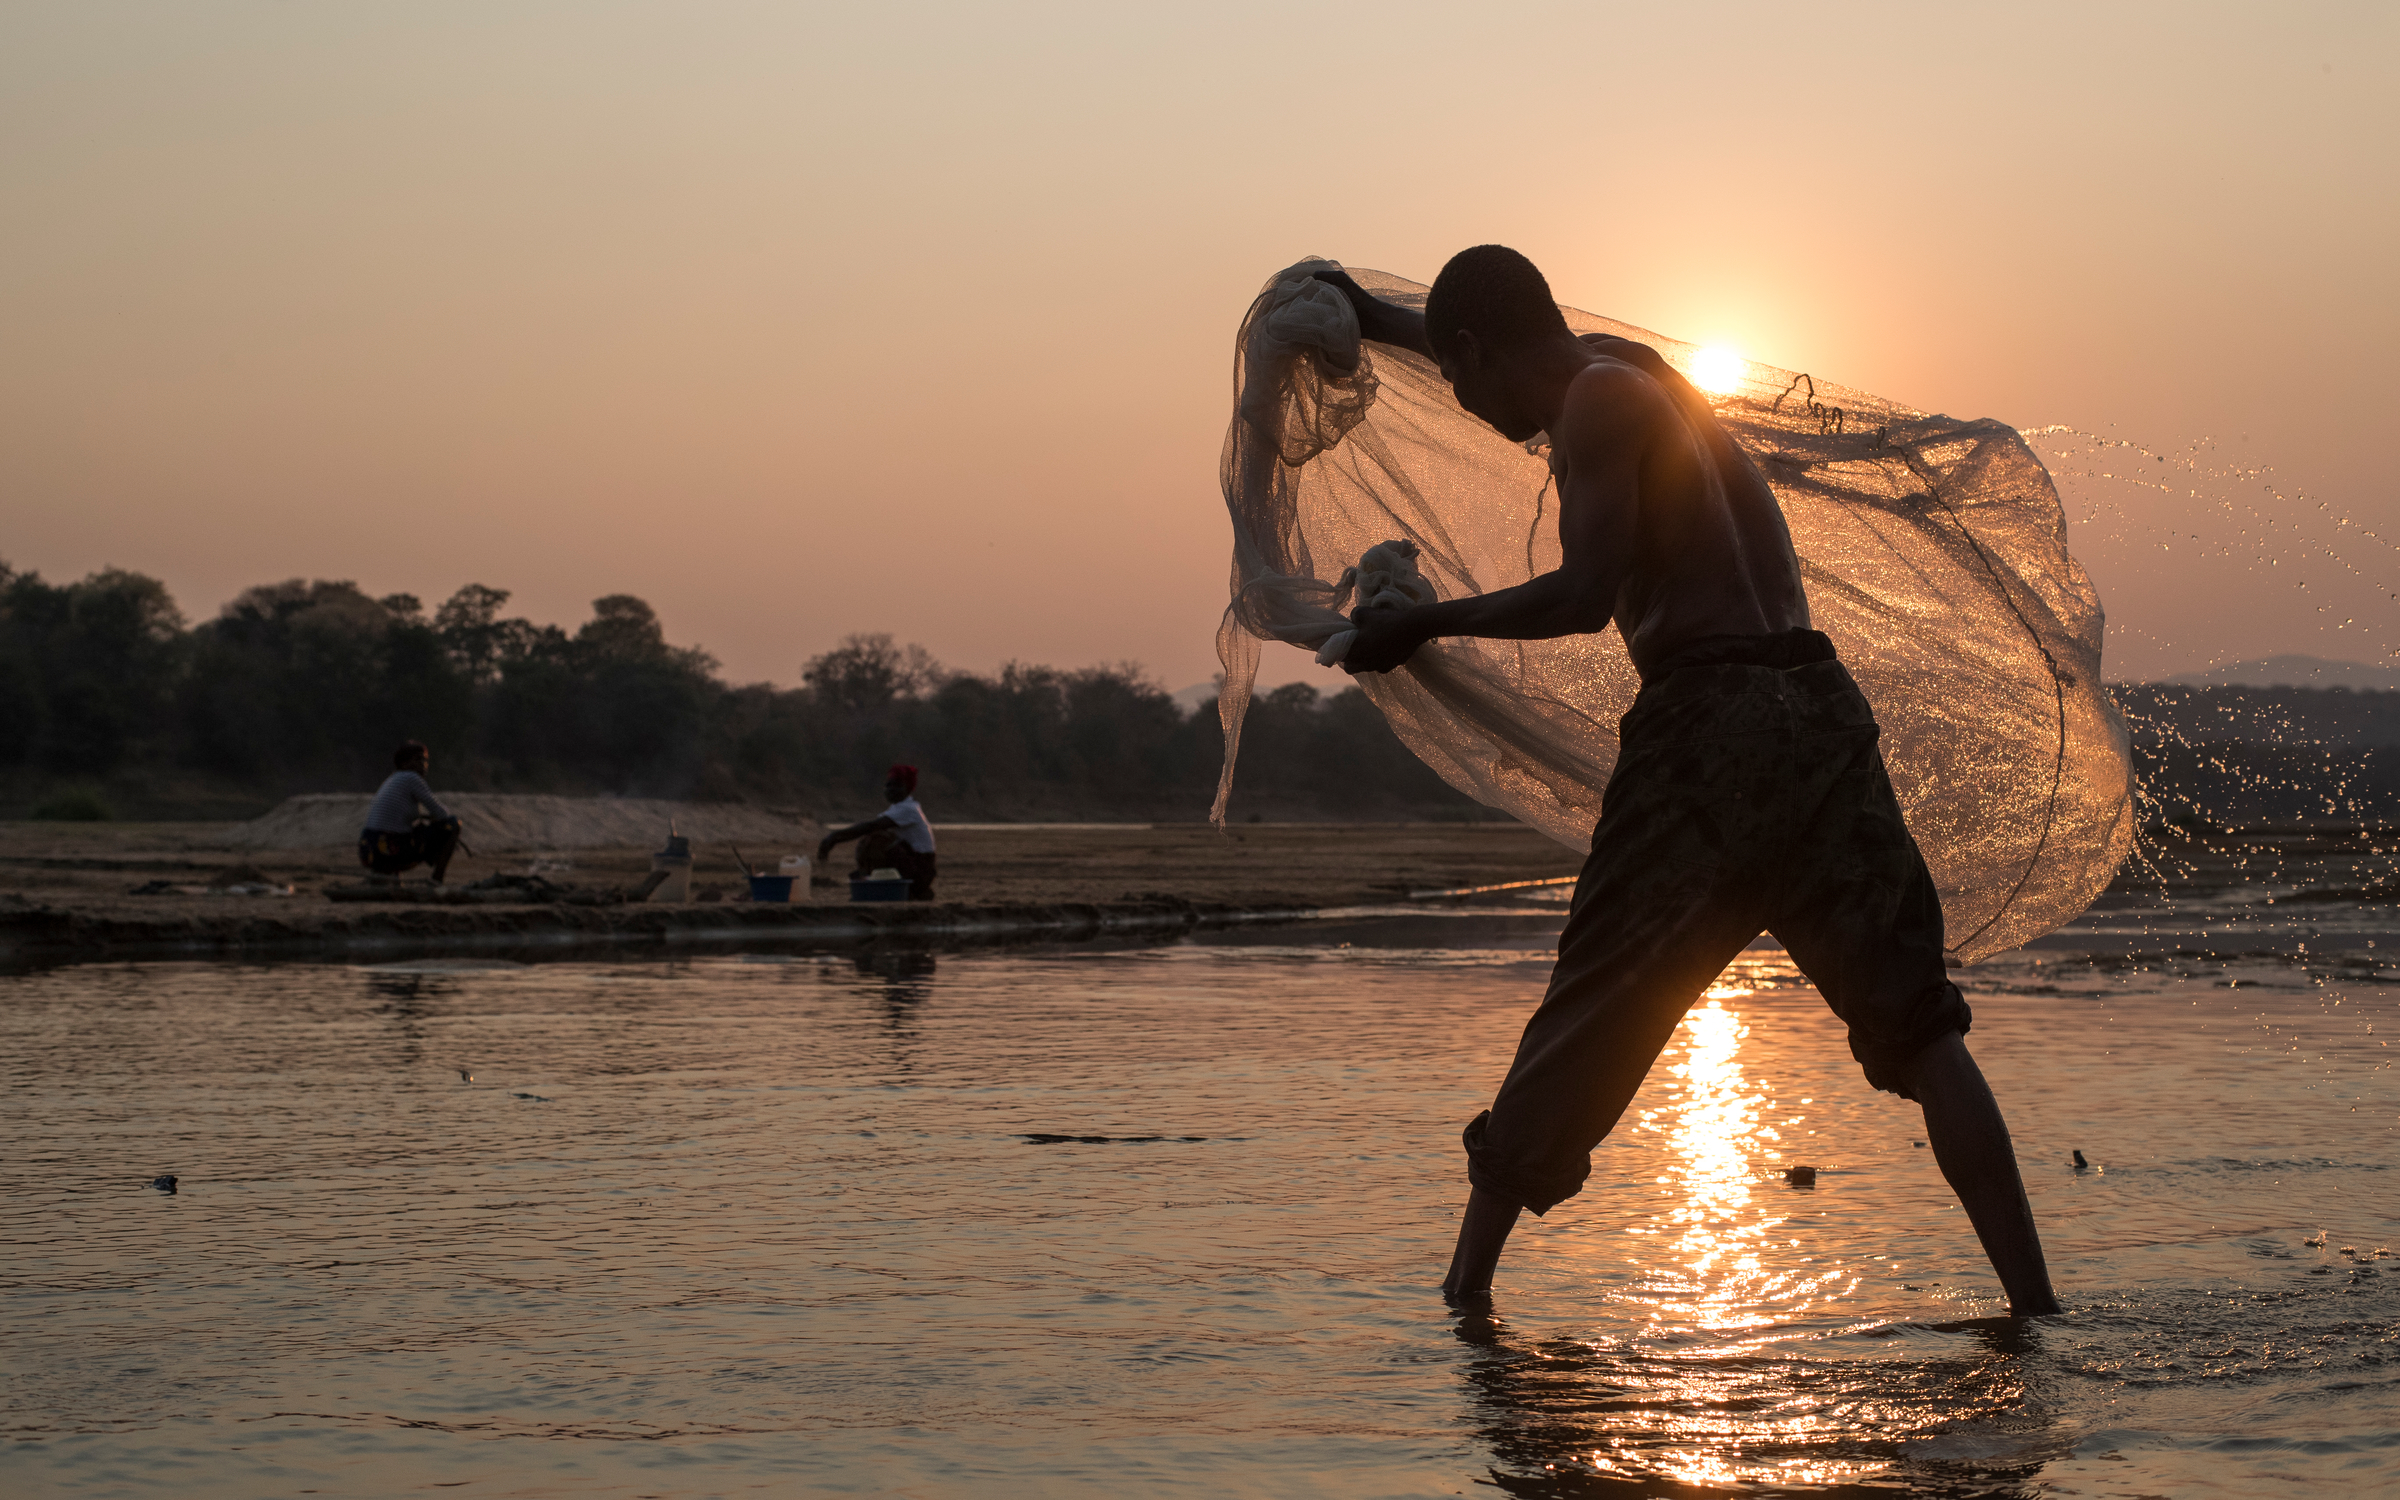 A local fisherman casting his net